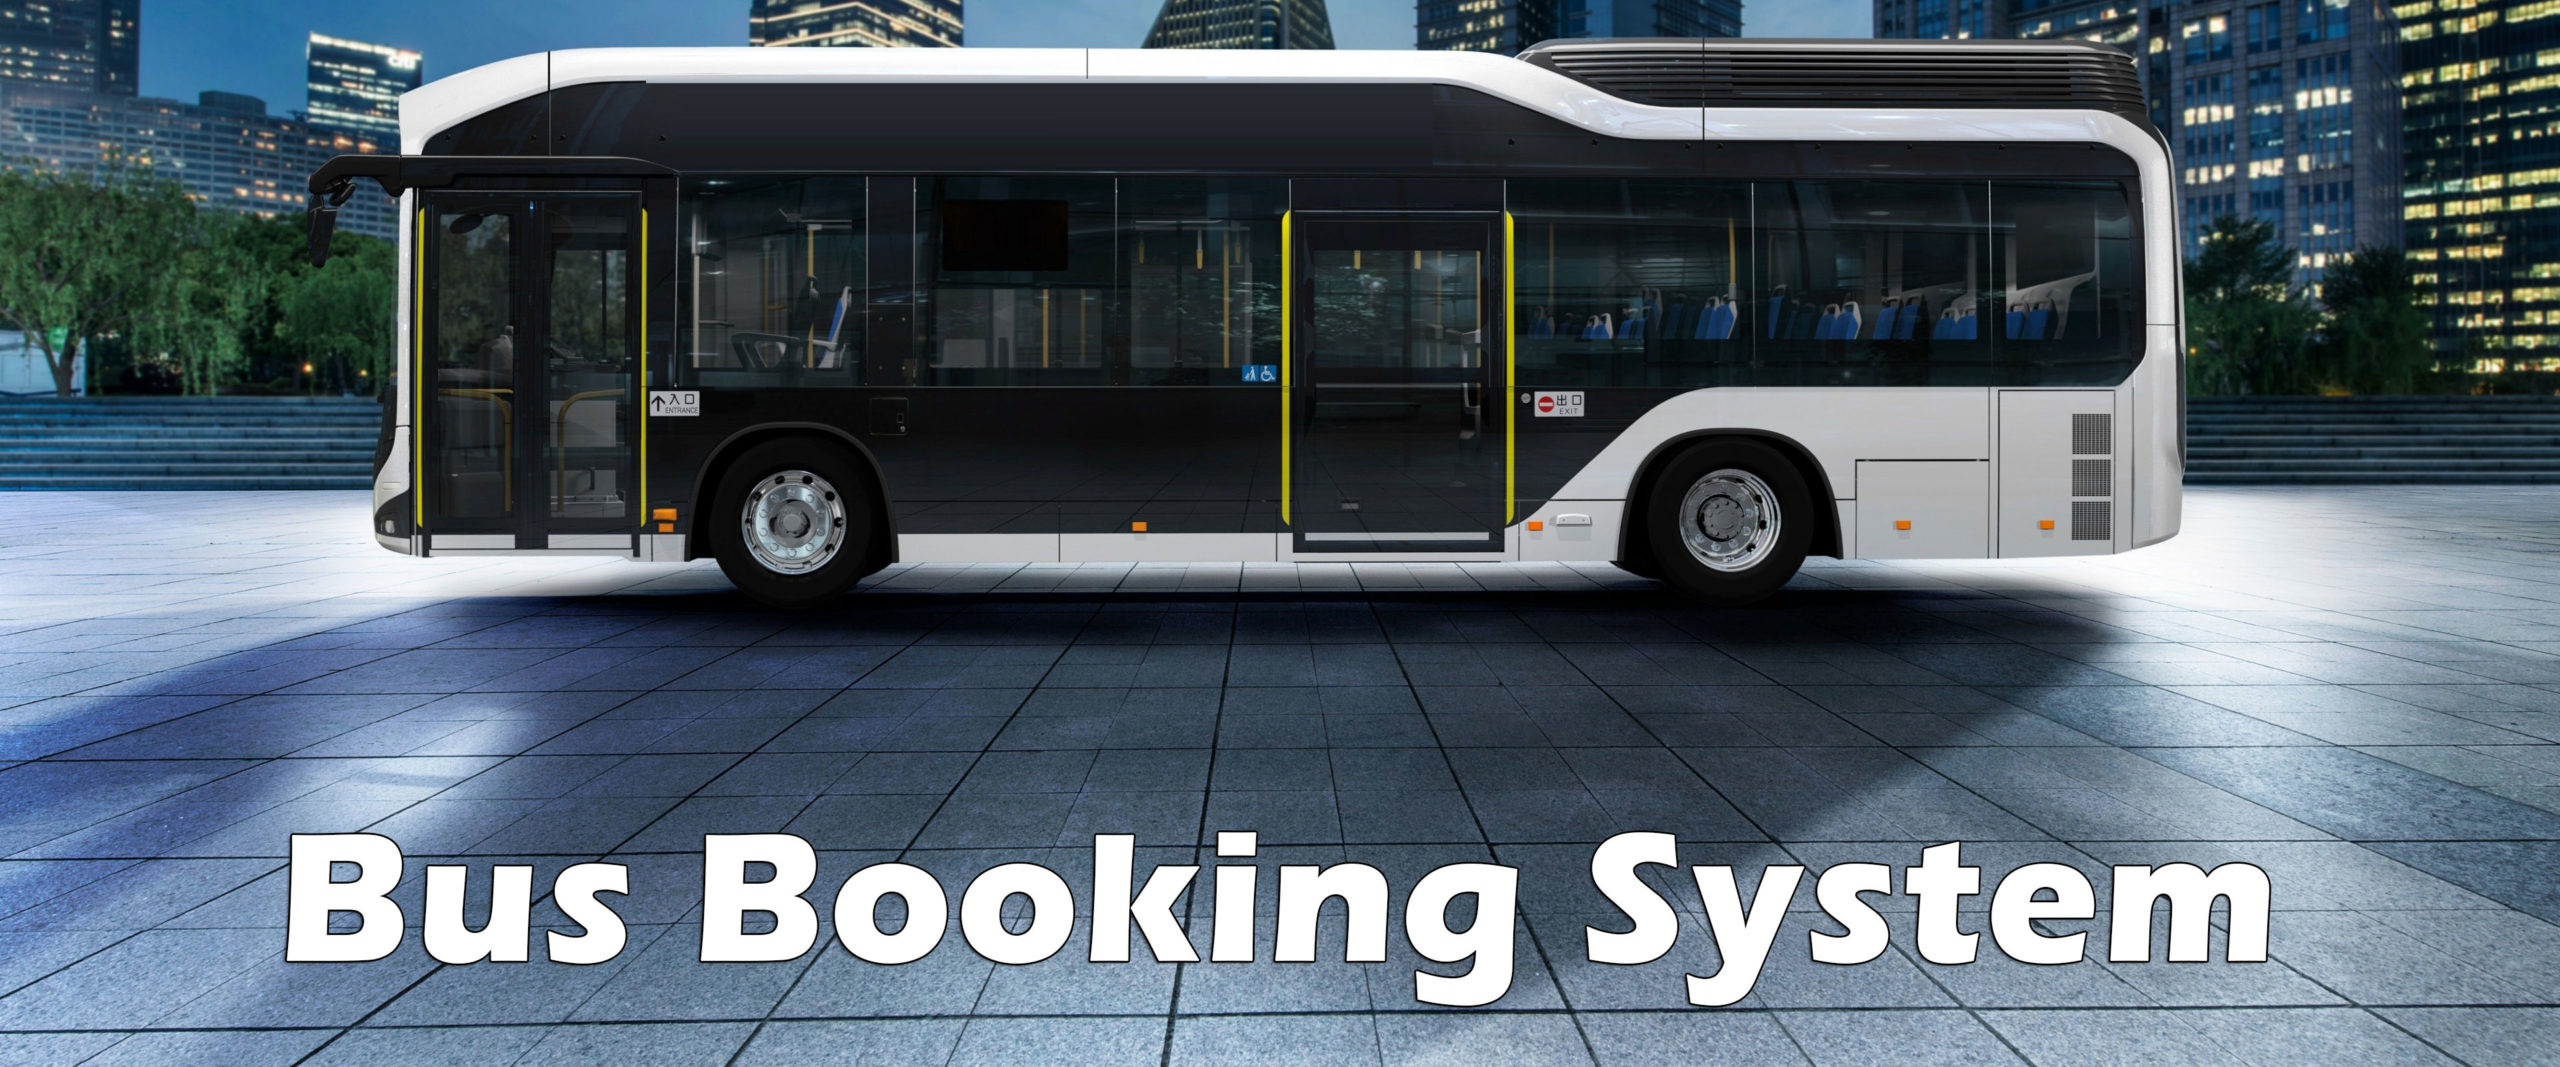 Bus Booking System